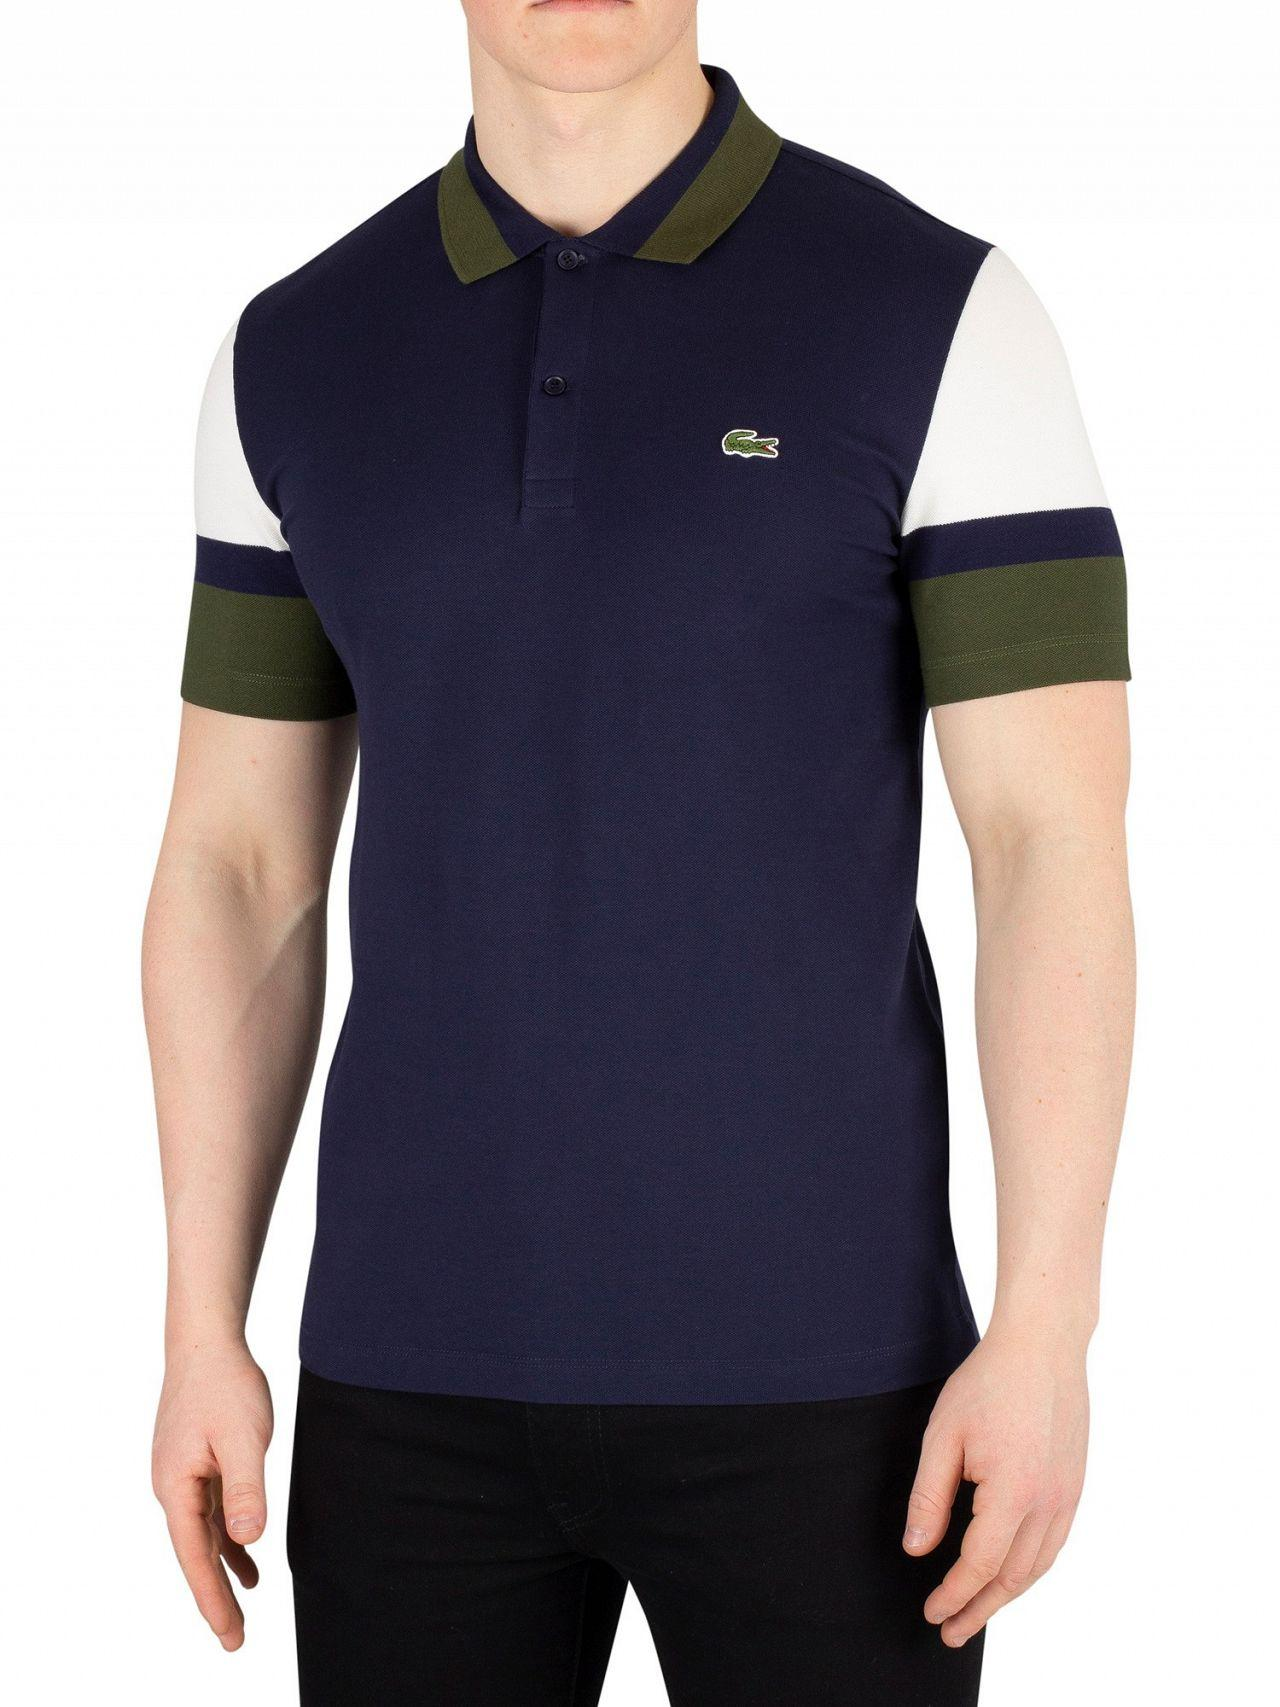 71ad0e1daba Lyst - Lacoste Blue Marine Slim Fit Poloshirt in Blue for Men